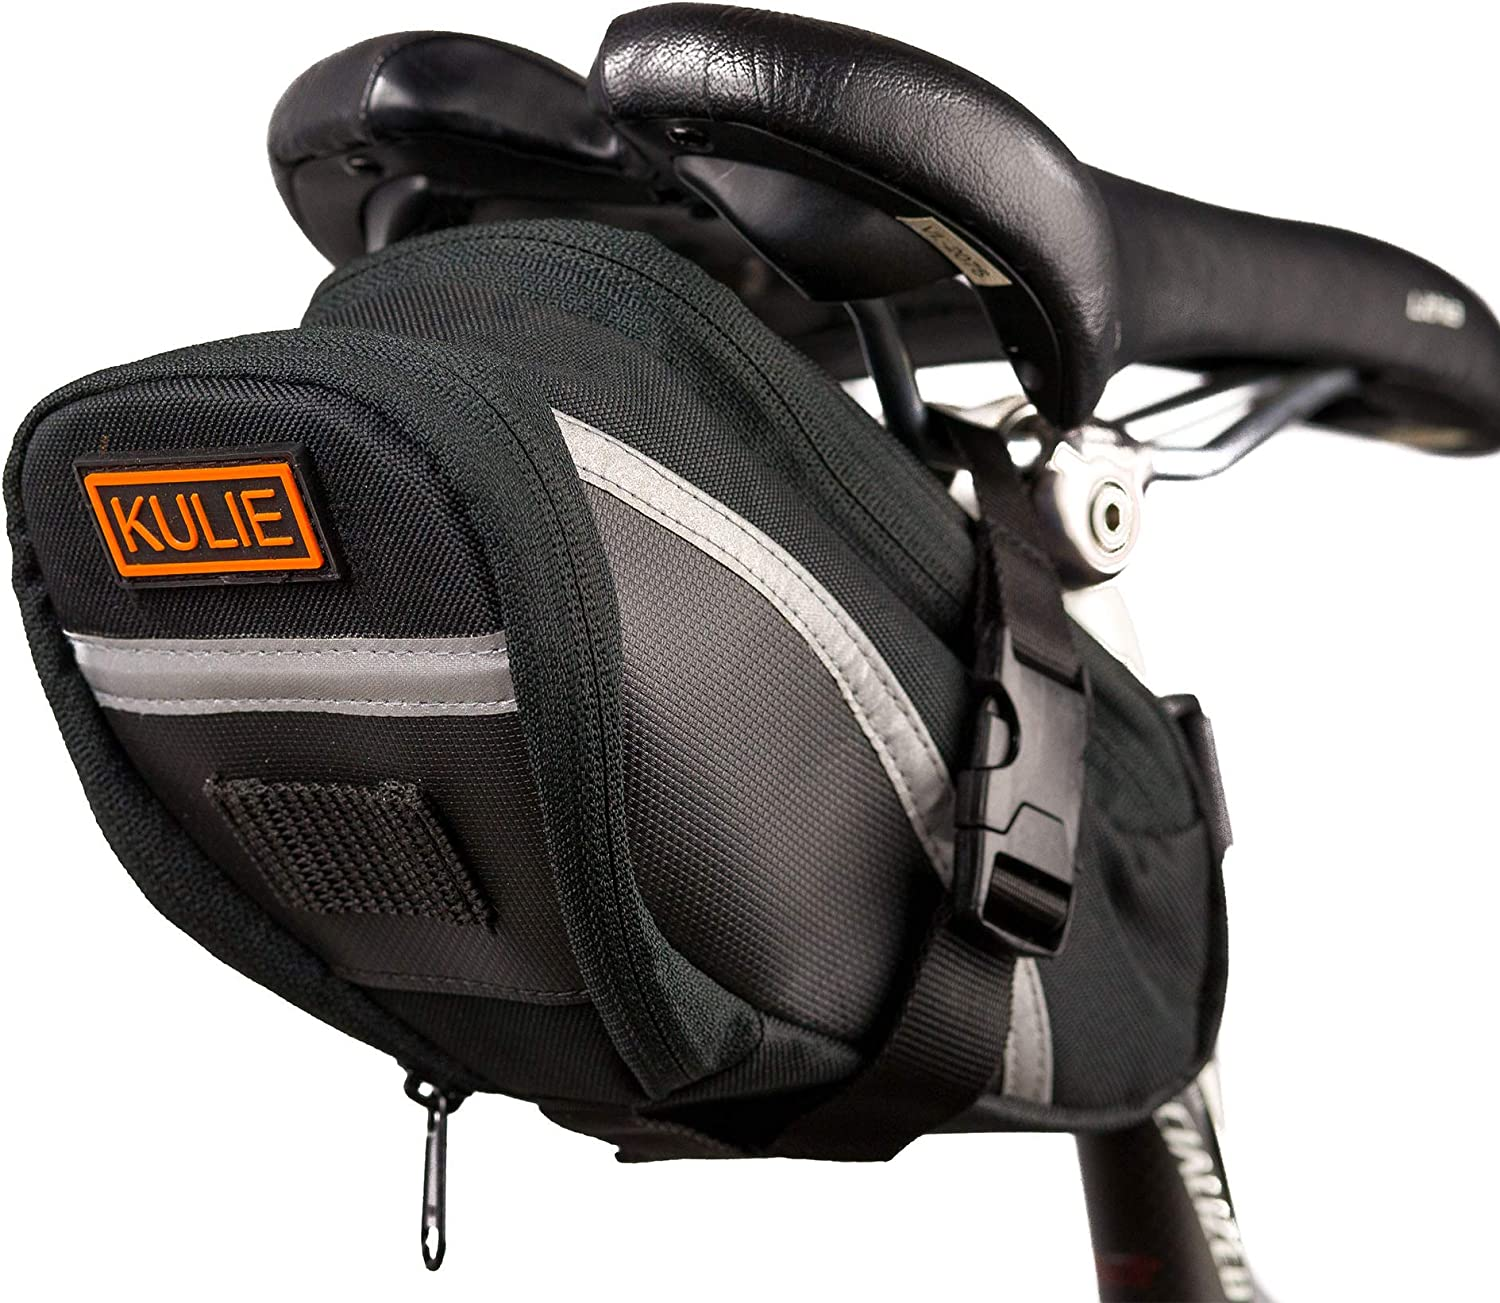 Kulie Bicycle Under Saddle/Seat Bag | Dangle Free Strap-On Mounted Pack | Rattle-Free YKK Zipper | Waterproof | High Visibility 3M Reflector | Uber Light | Tools Tube Fuel Phone